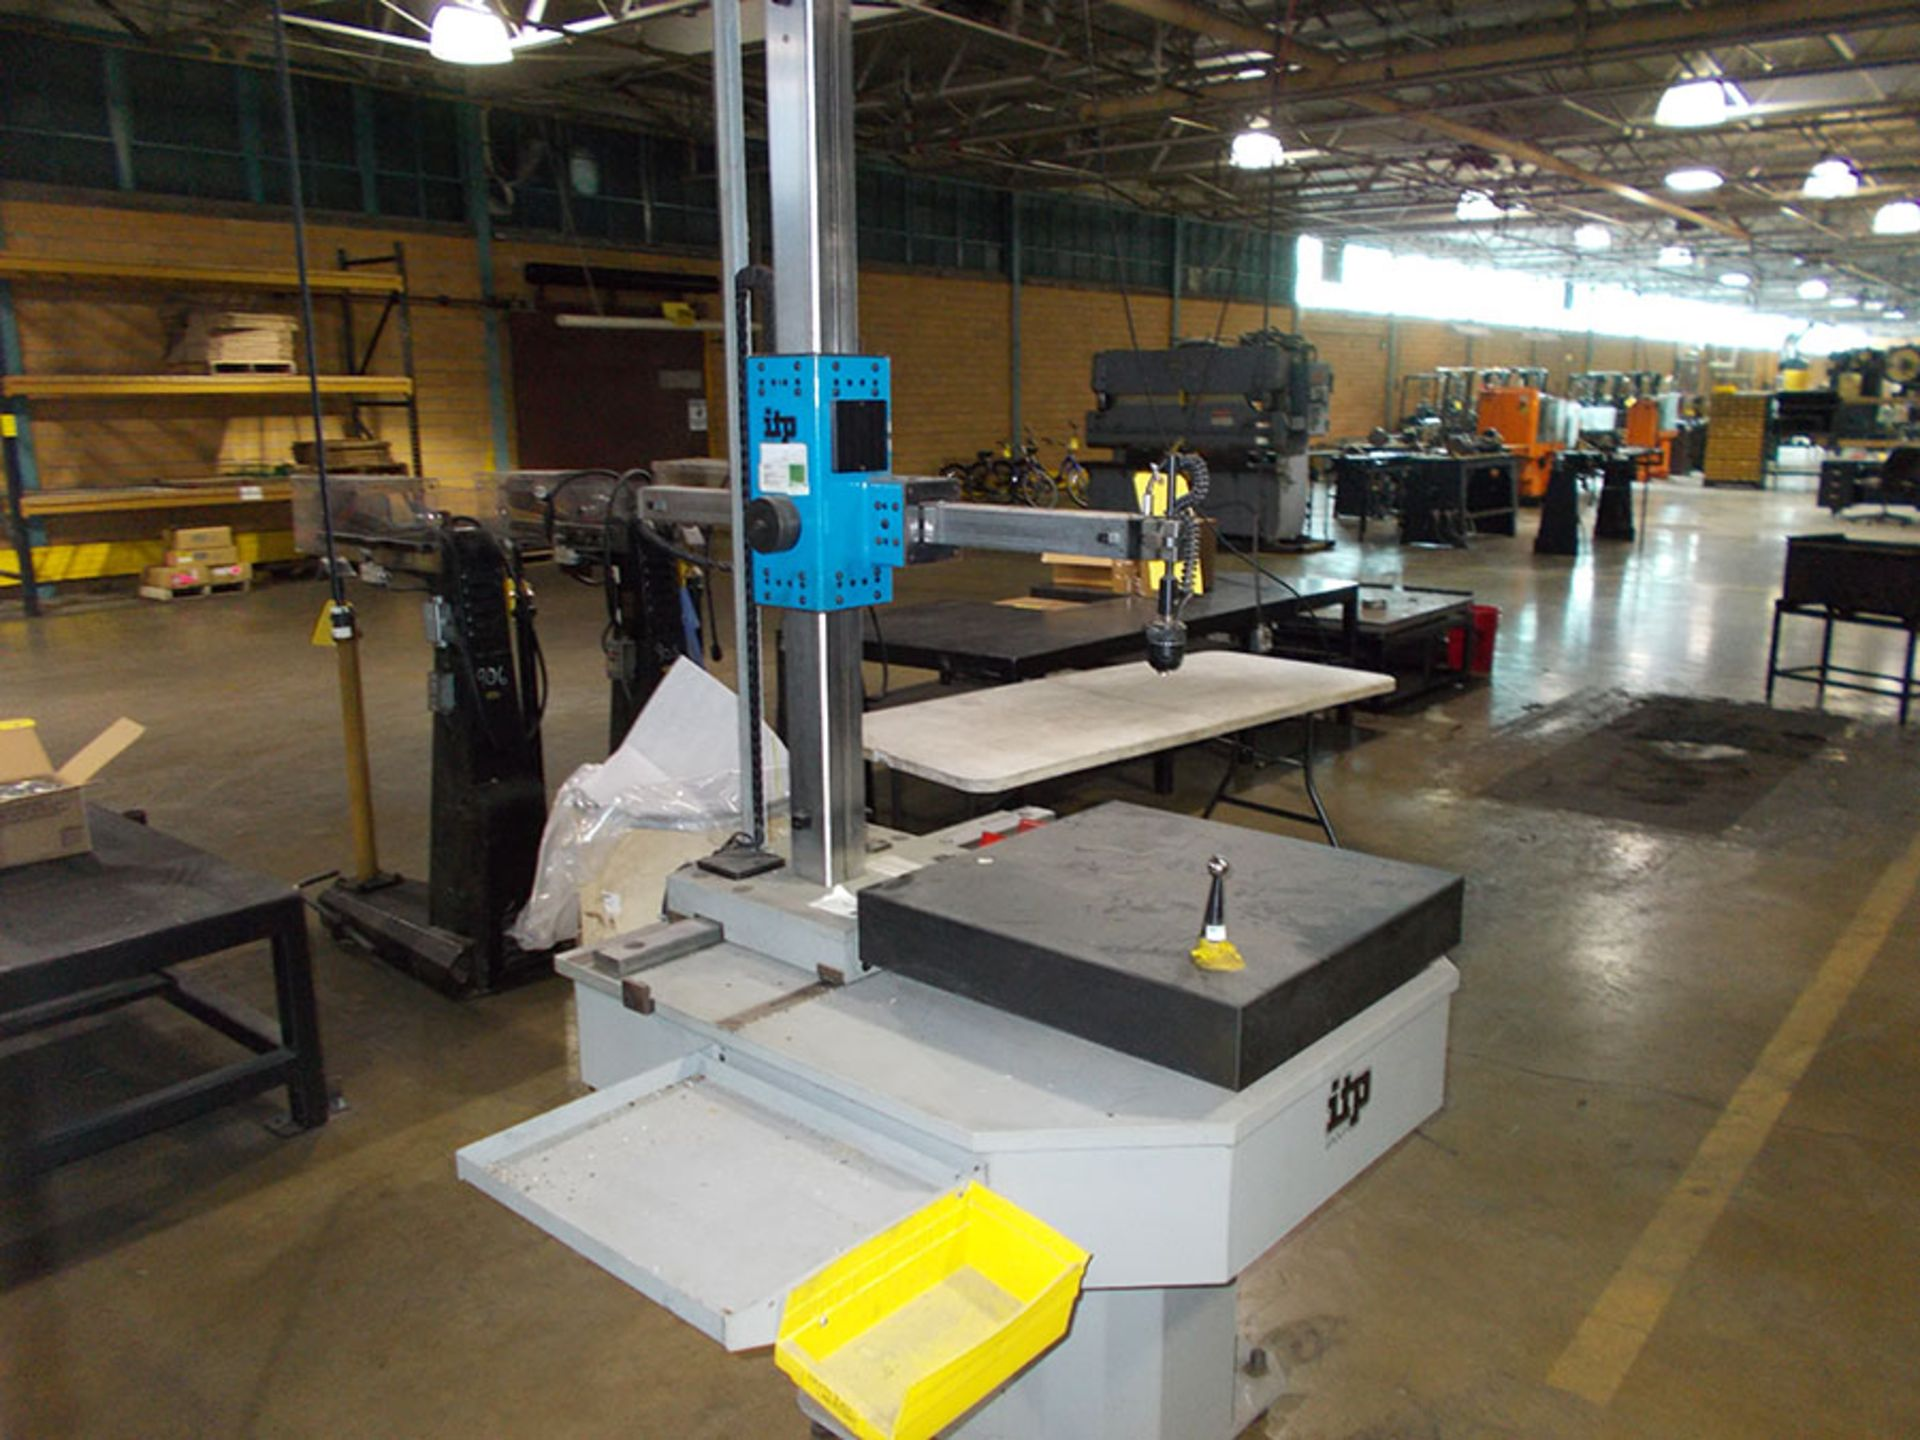 Lot 693 - ITP GROUP SURFACE INSPECTION MACHINE